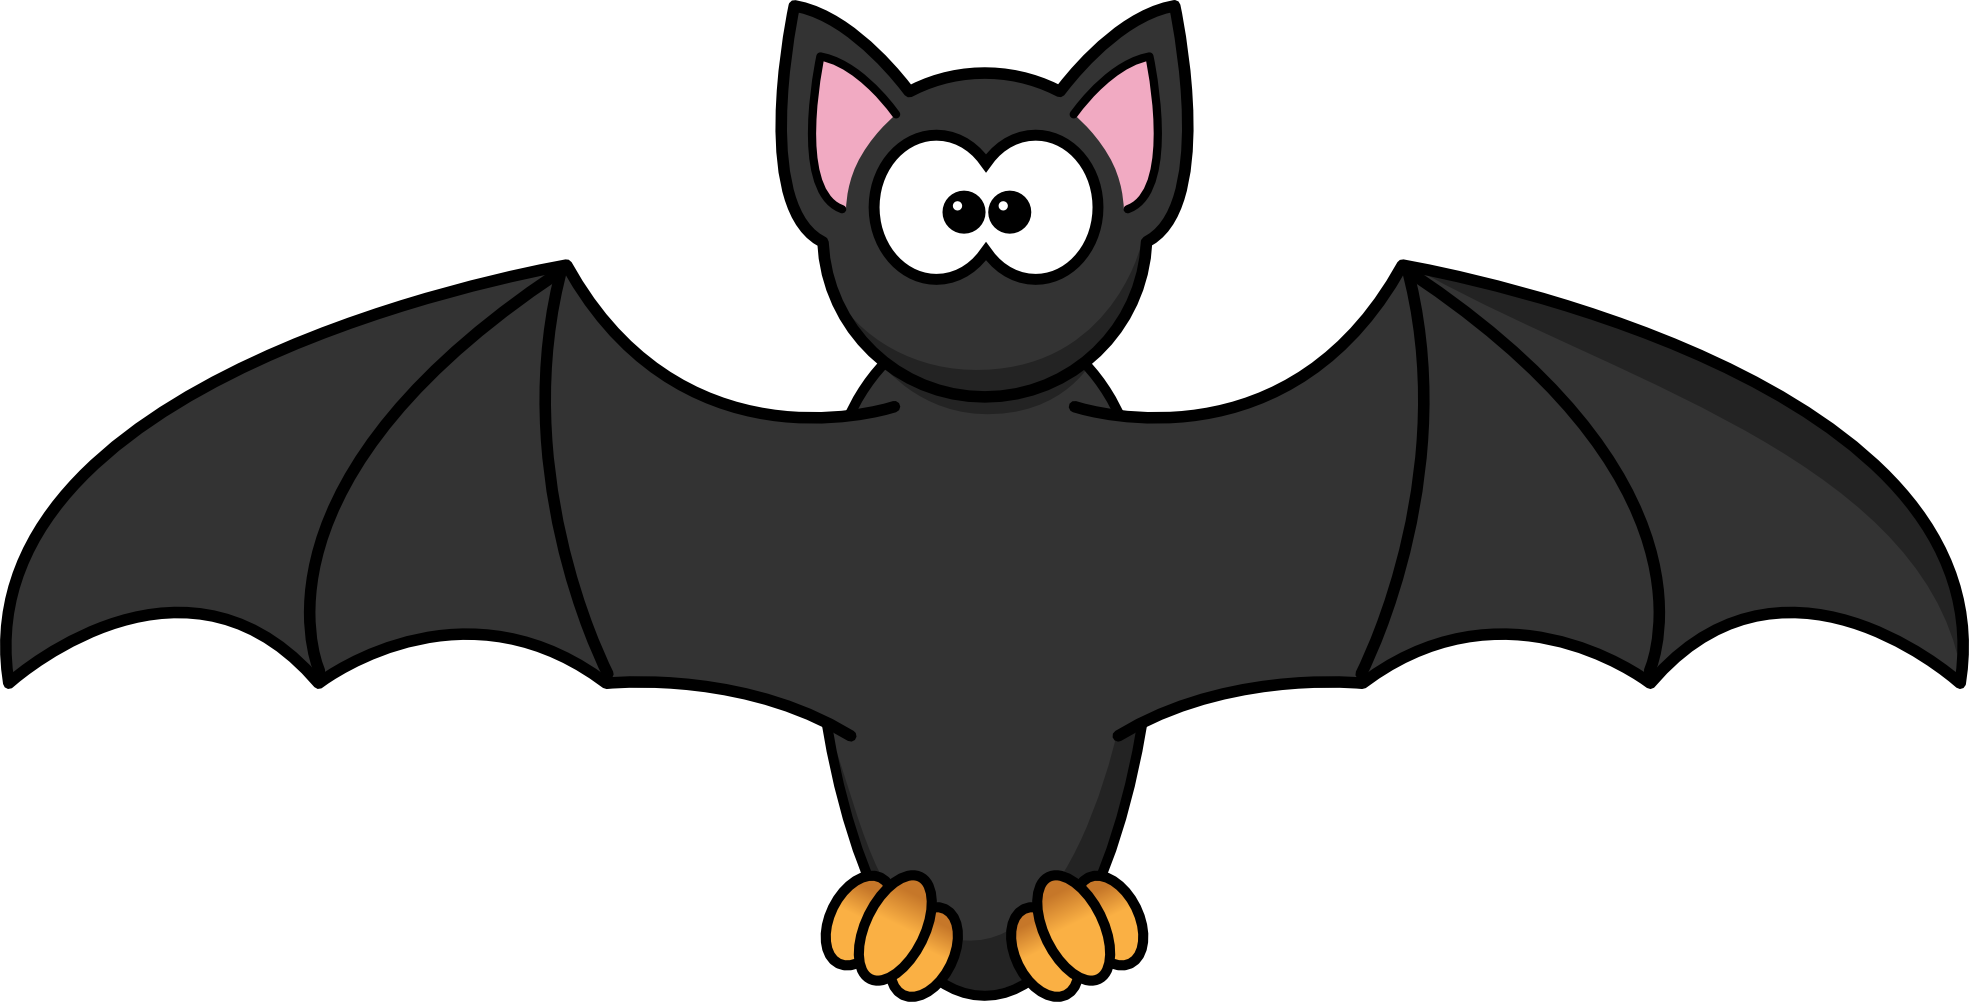 Cute halloween bats clipart image freeuse download 28+ Collection of Free Clipart Halloween Bats | High quality, free ... image freeuse download